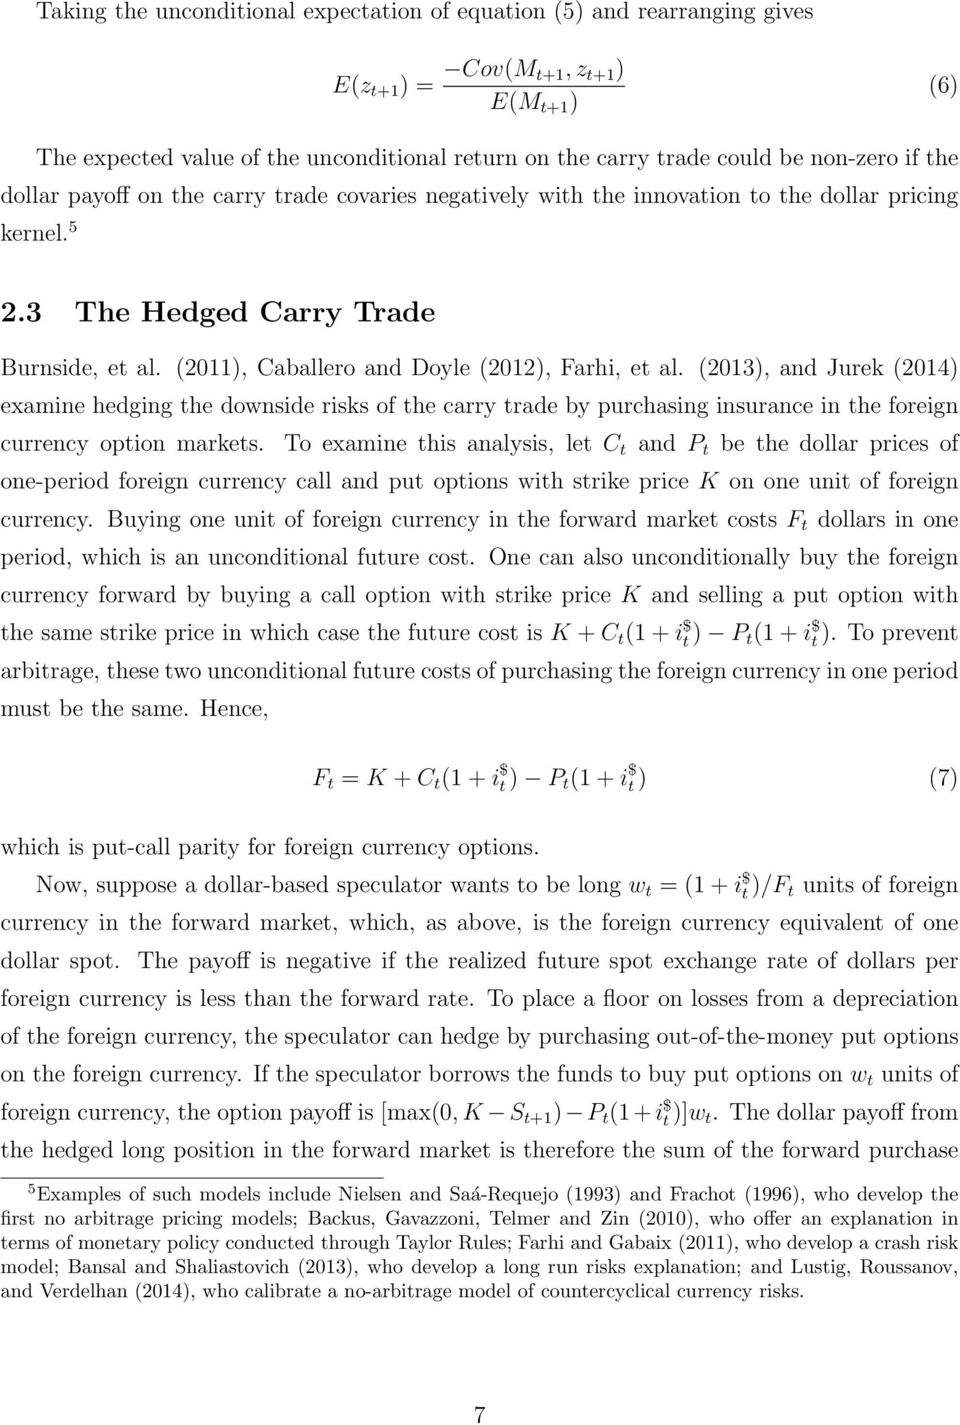 (2011), Caballero and Doyle (2012), Farhi, et al. (2013), and Jurek (2014) examine hedging the downside risks of the carry trade by purchasing insurance in the foreign currency option markets.